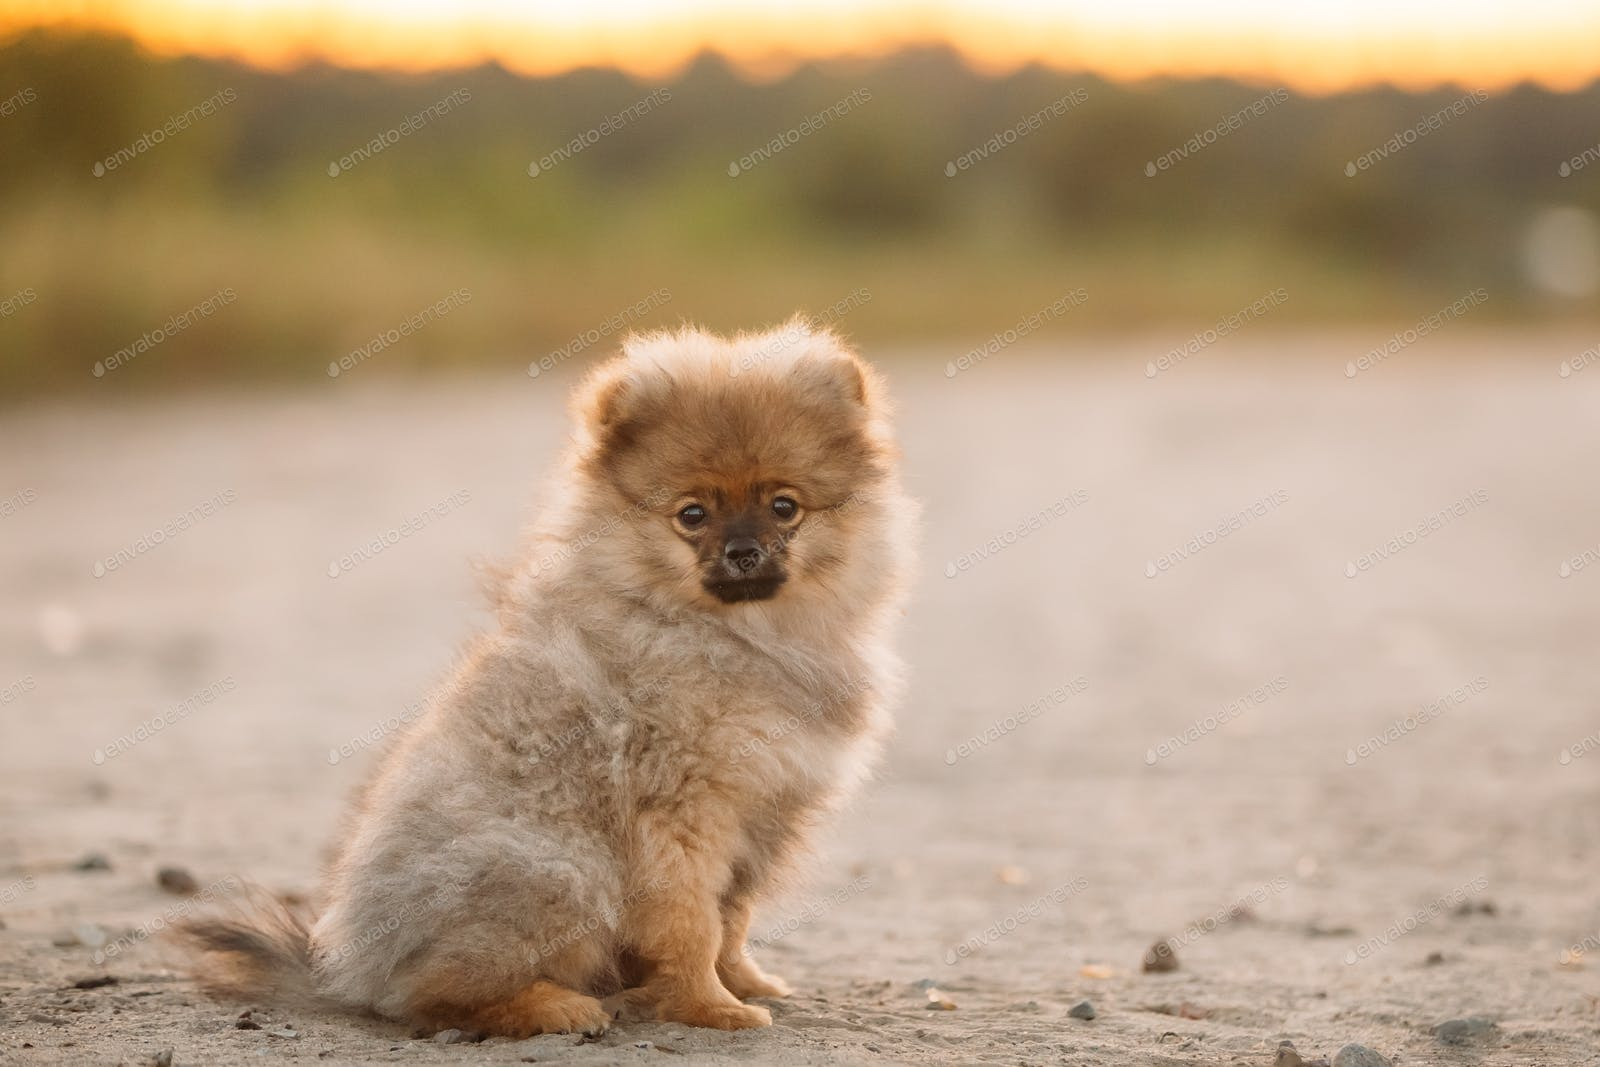 Young Hy White Puppy Pomeranian